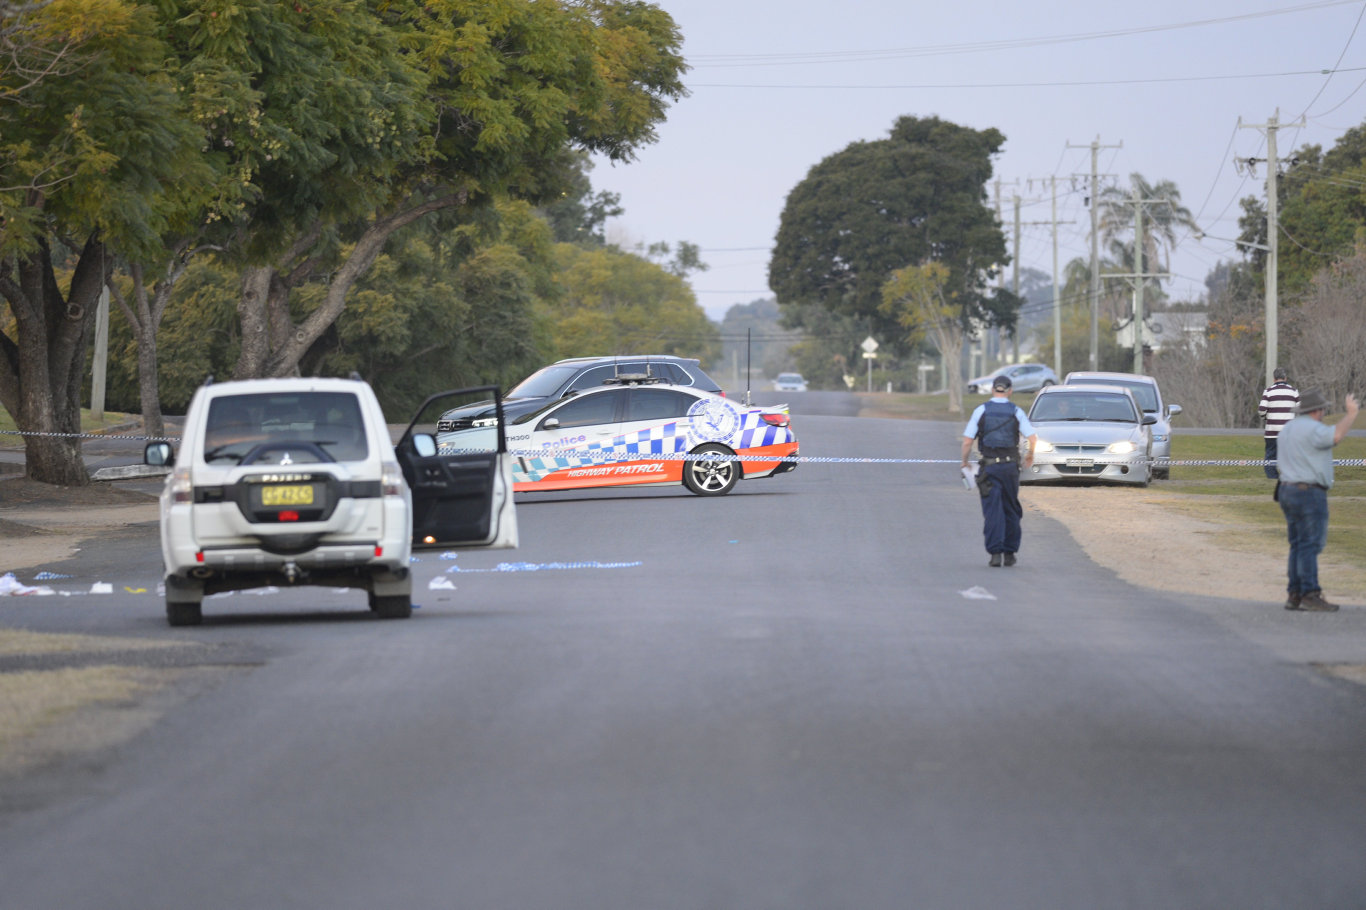 SHOT: Christopher McGrail, 44, was shot by police on August 6, 2017 during a confrontation in Grafton and died in hospital.